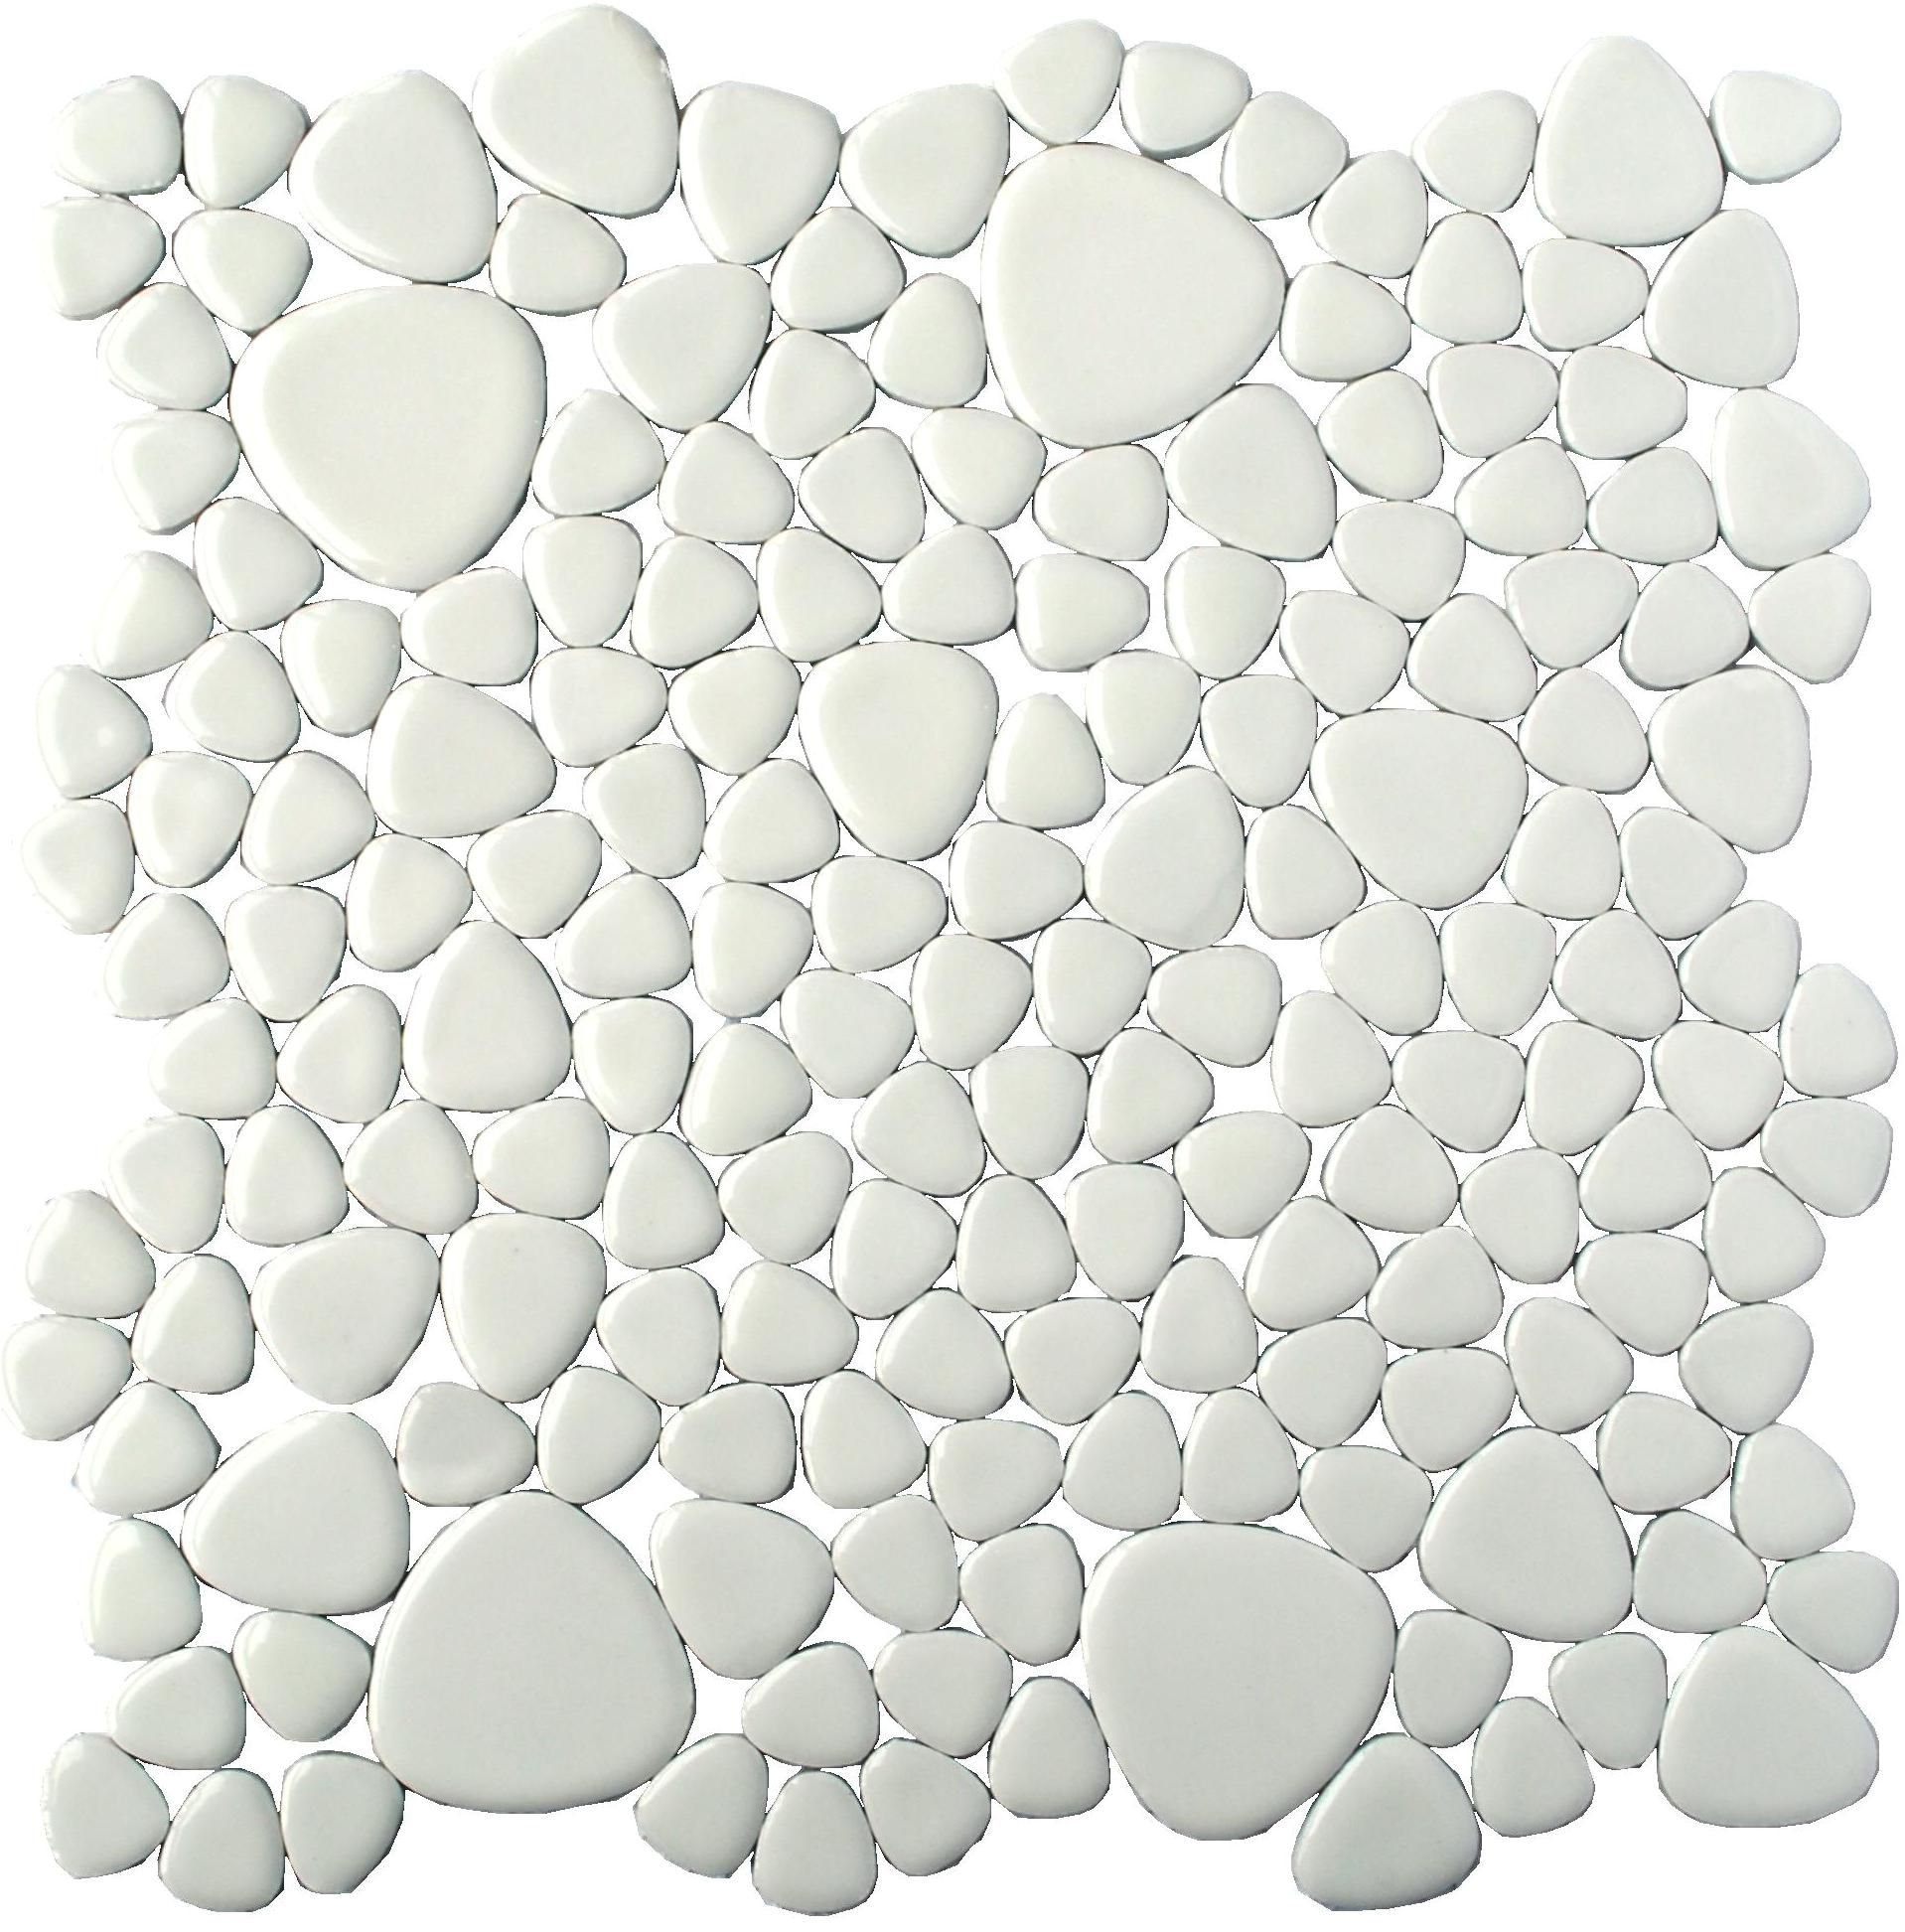 Porcelain arctic white pebble tile for wall in the bathroom new create porcelain arctic white pebble tile firing ceramic pebble shaped pieces various sizes porcelain pieces adhered durable mesh backing make these mosaic doublecrazyfo Gallery